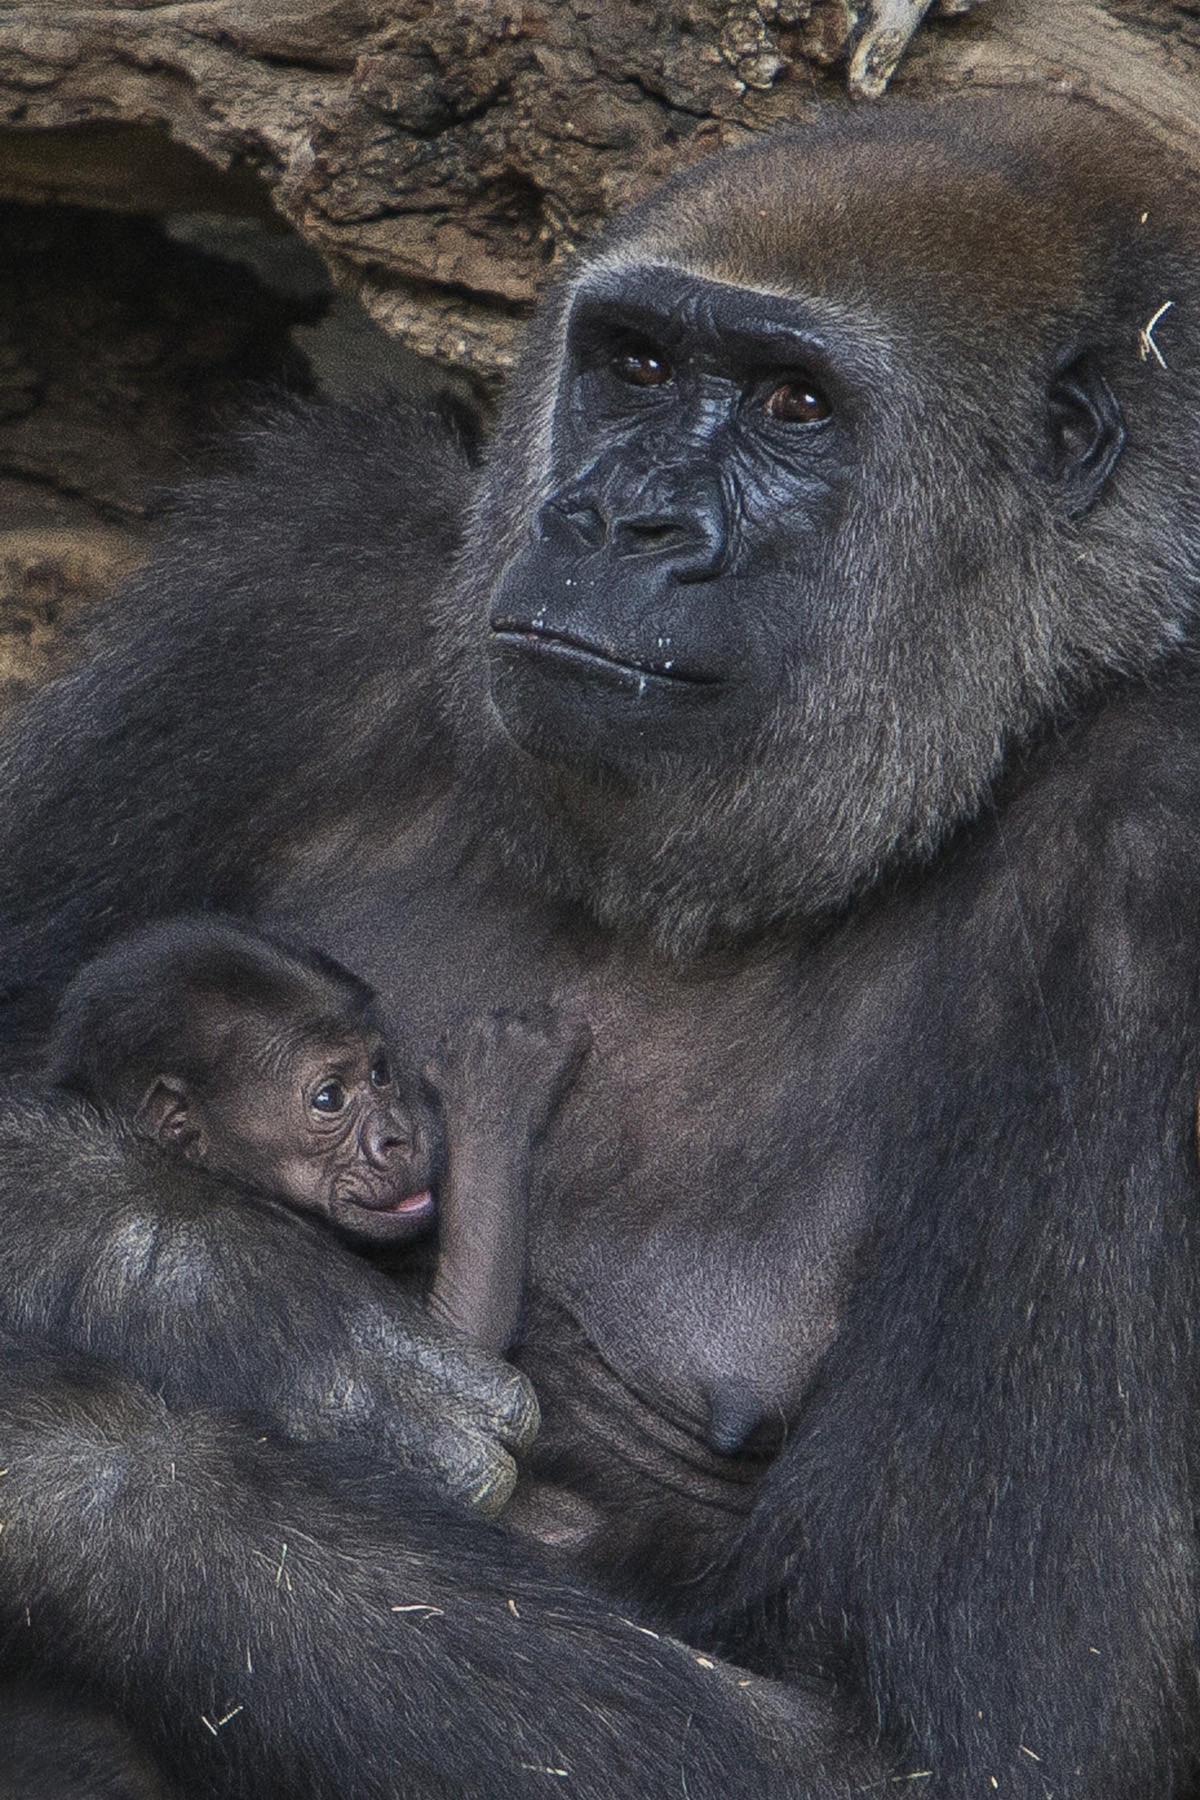 A new mother gorilla at the San Diego Zoo Safari Park ventured outdoors for the first time with her 13-day-old baby girl. The mother, Imani, and baby were only physically introduced to each other a day earlier.